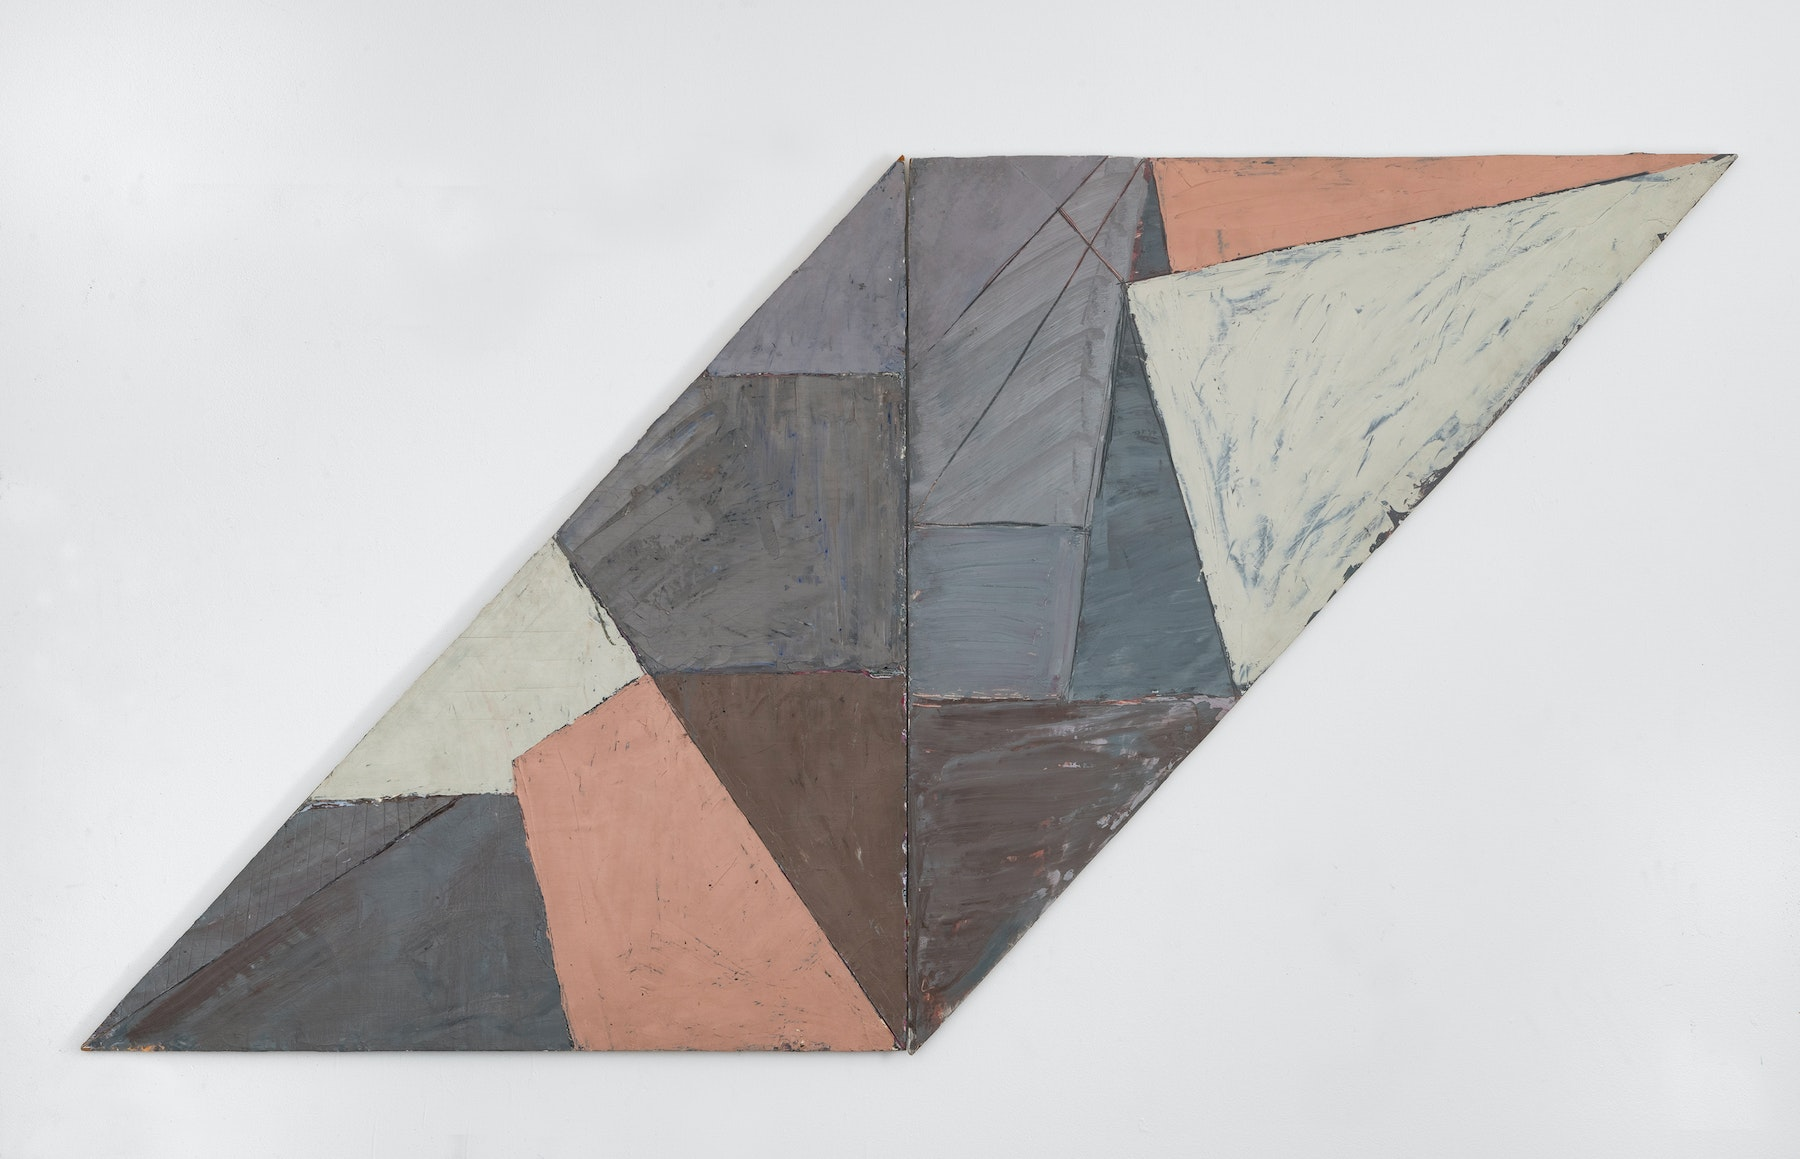 """Louise Fishman """"IRREGULAR DIPTYCH / PARALLELOGRAM,"""" 1975 Oil on wood diptych 48 x 48"""" [HxW] (121.92 x 121.92 cm) Inventory #FIS167 Courtesy of the artist and Vielmetter Los Angeles Photo credit: Adam Reich"""